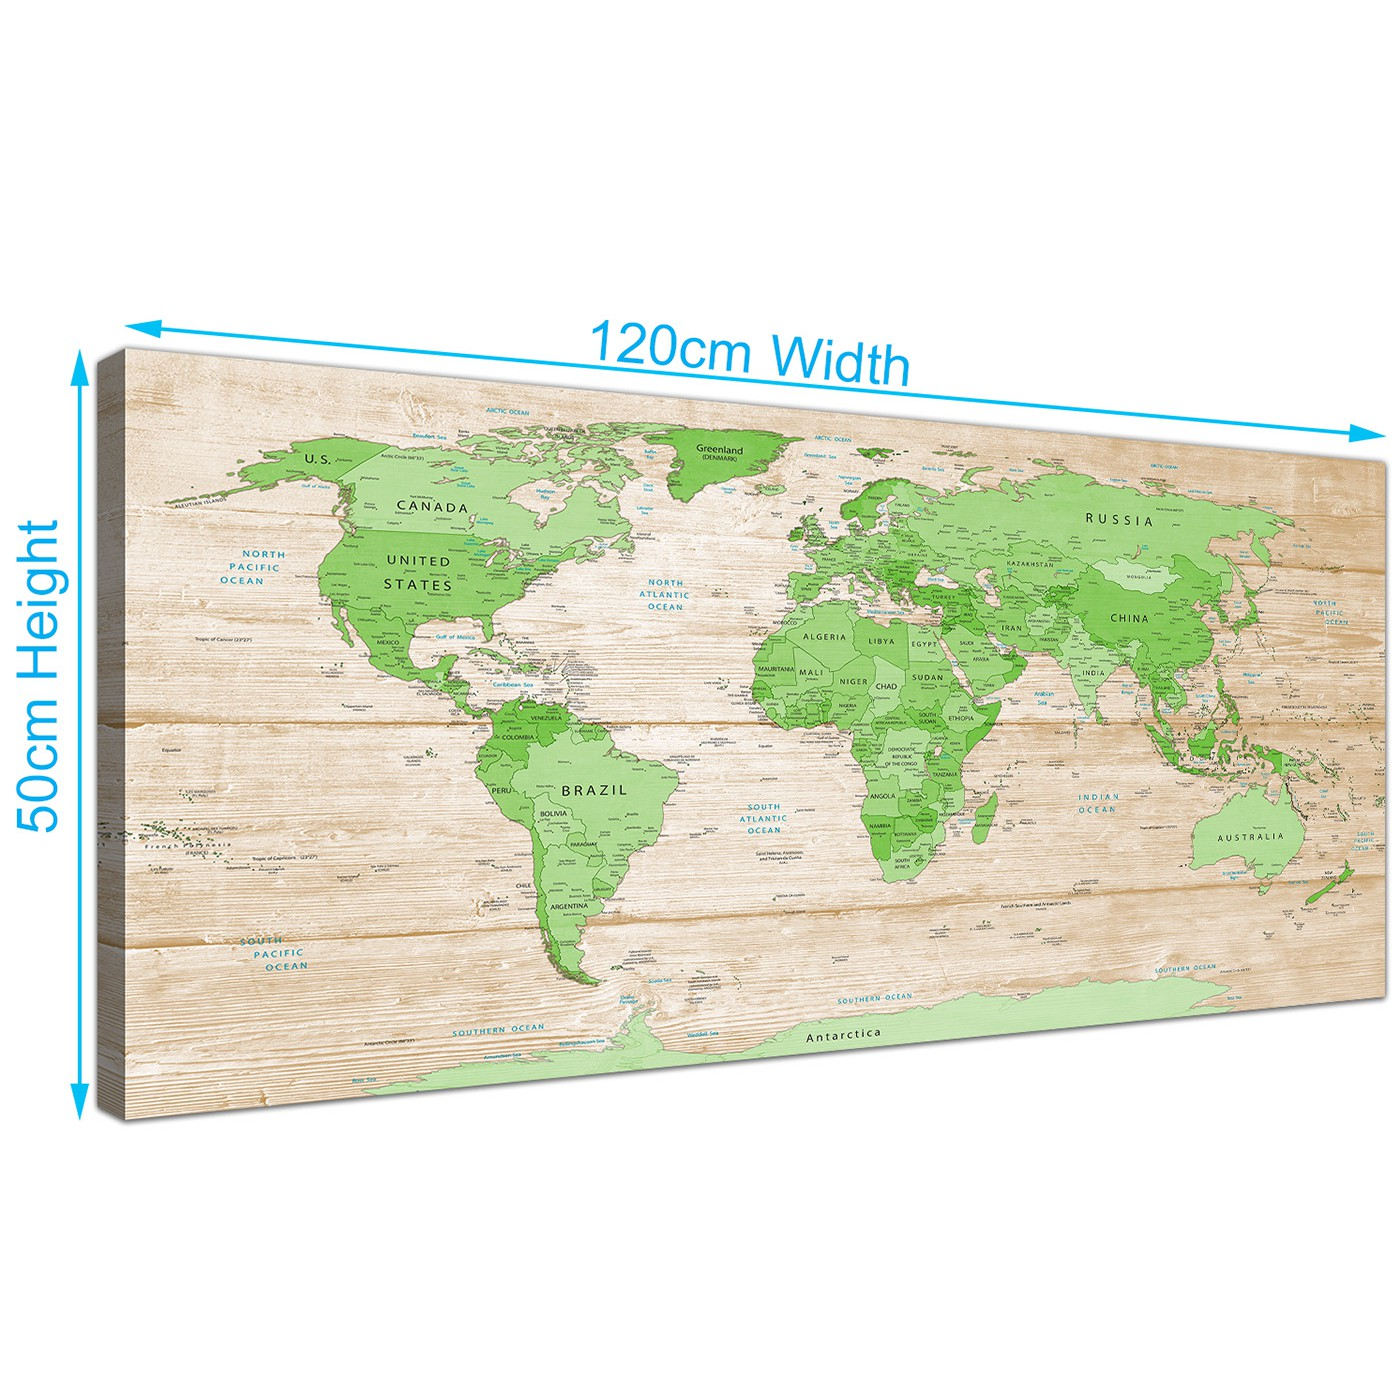 Large lime green cream world map atlas canvas wall art prints display gallery item 3 gumiabroncs Image collections